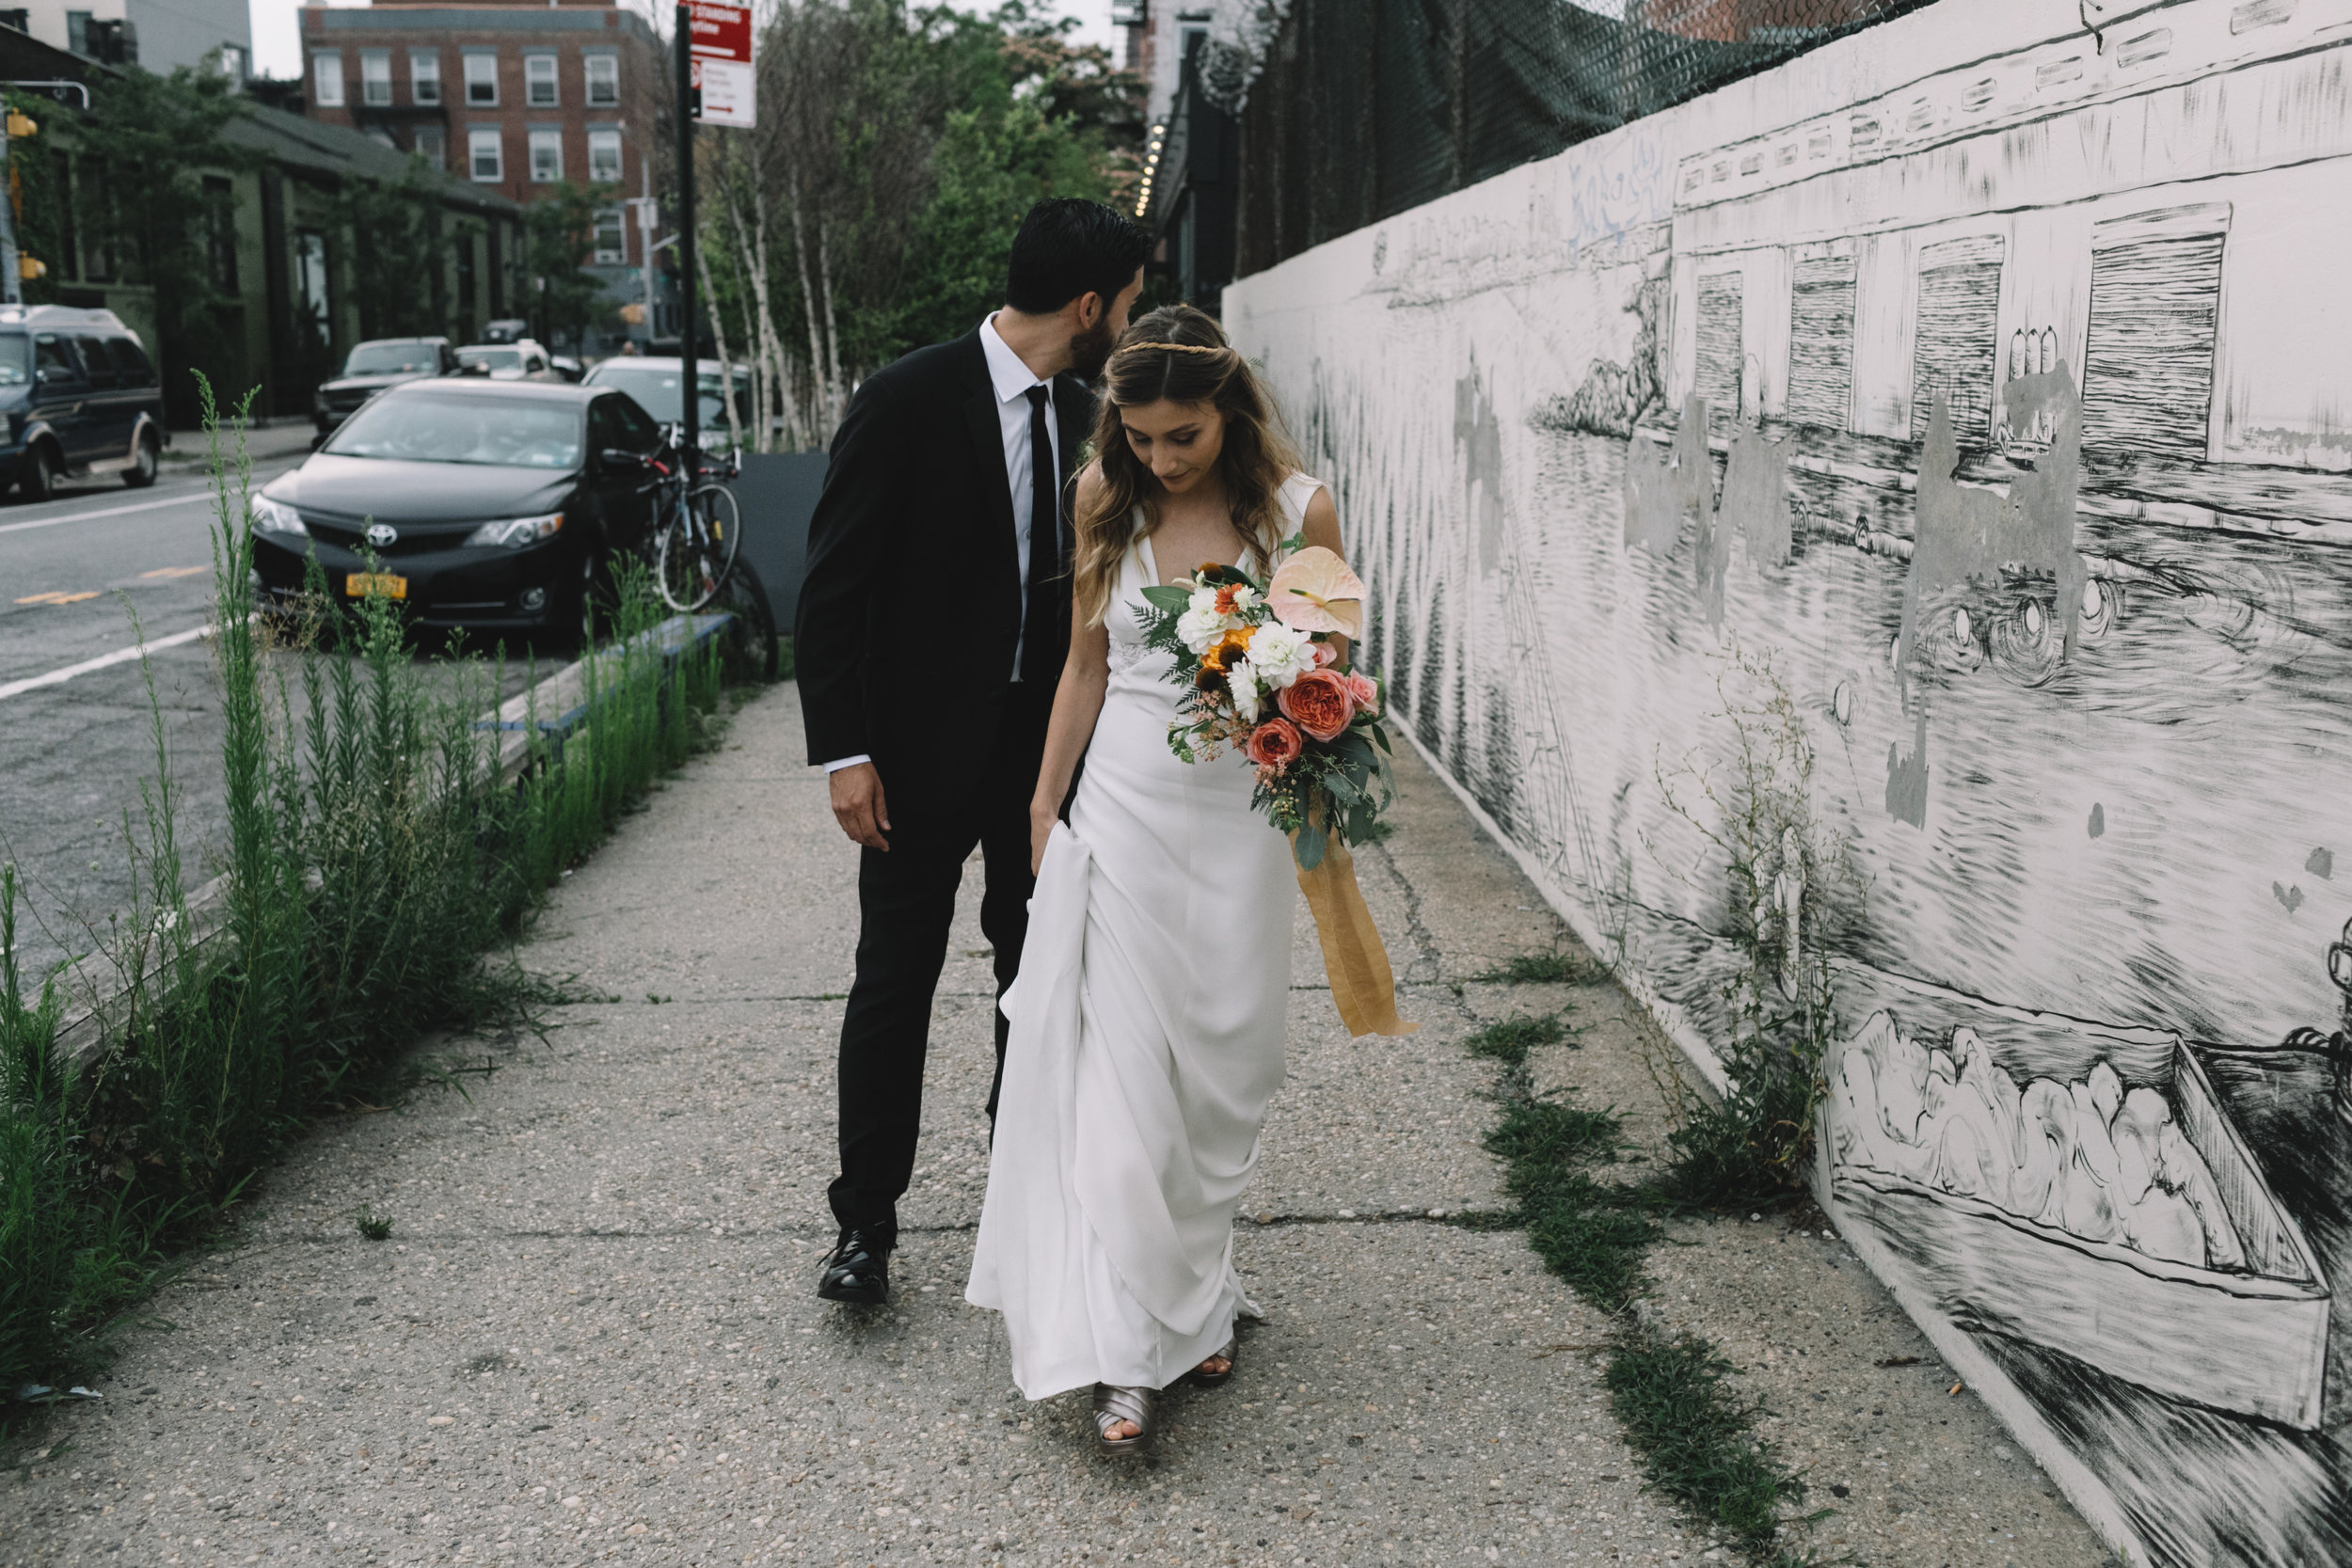 Christina + Joe - Photographed by Tom Leung501 Union, BK NYC7.28.17